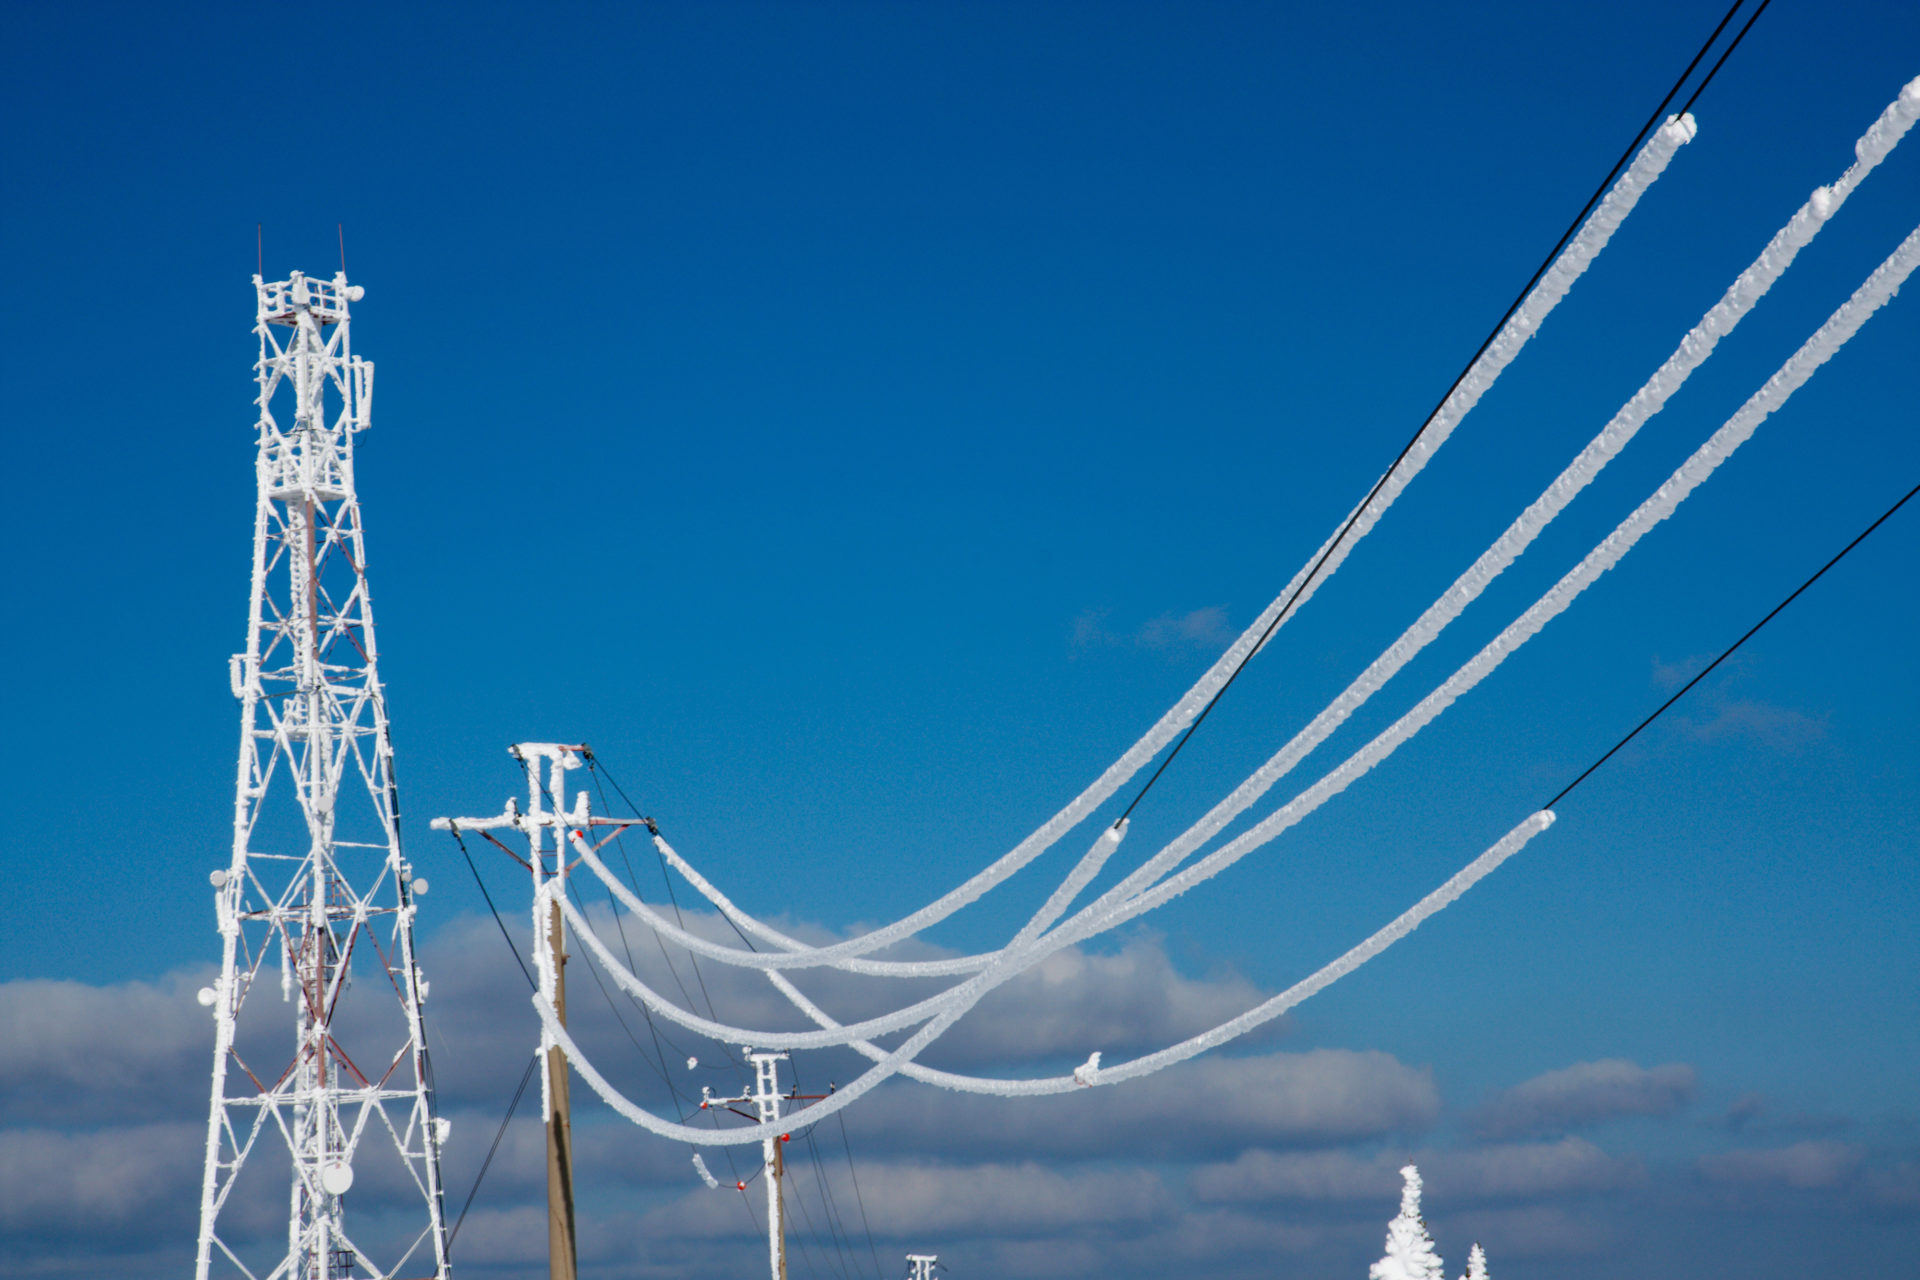 Snow weighing down a powerline. If it is not removed, a fault may occur